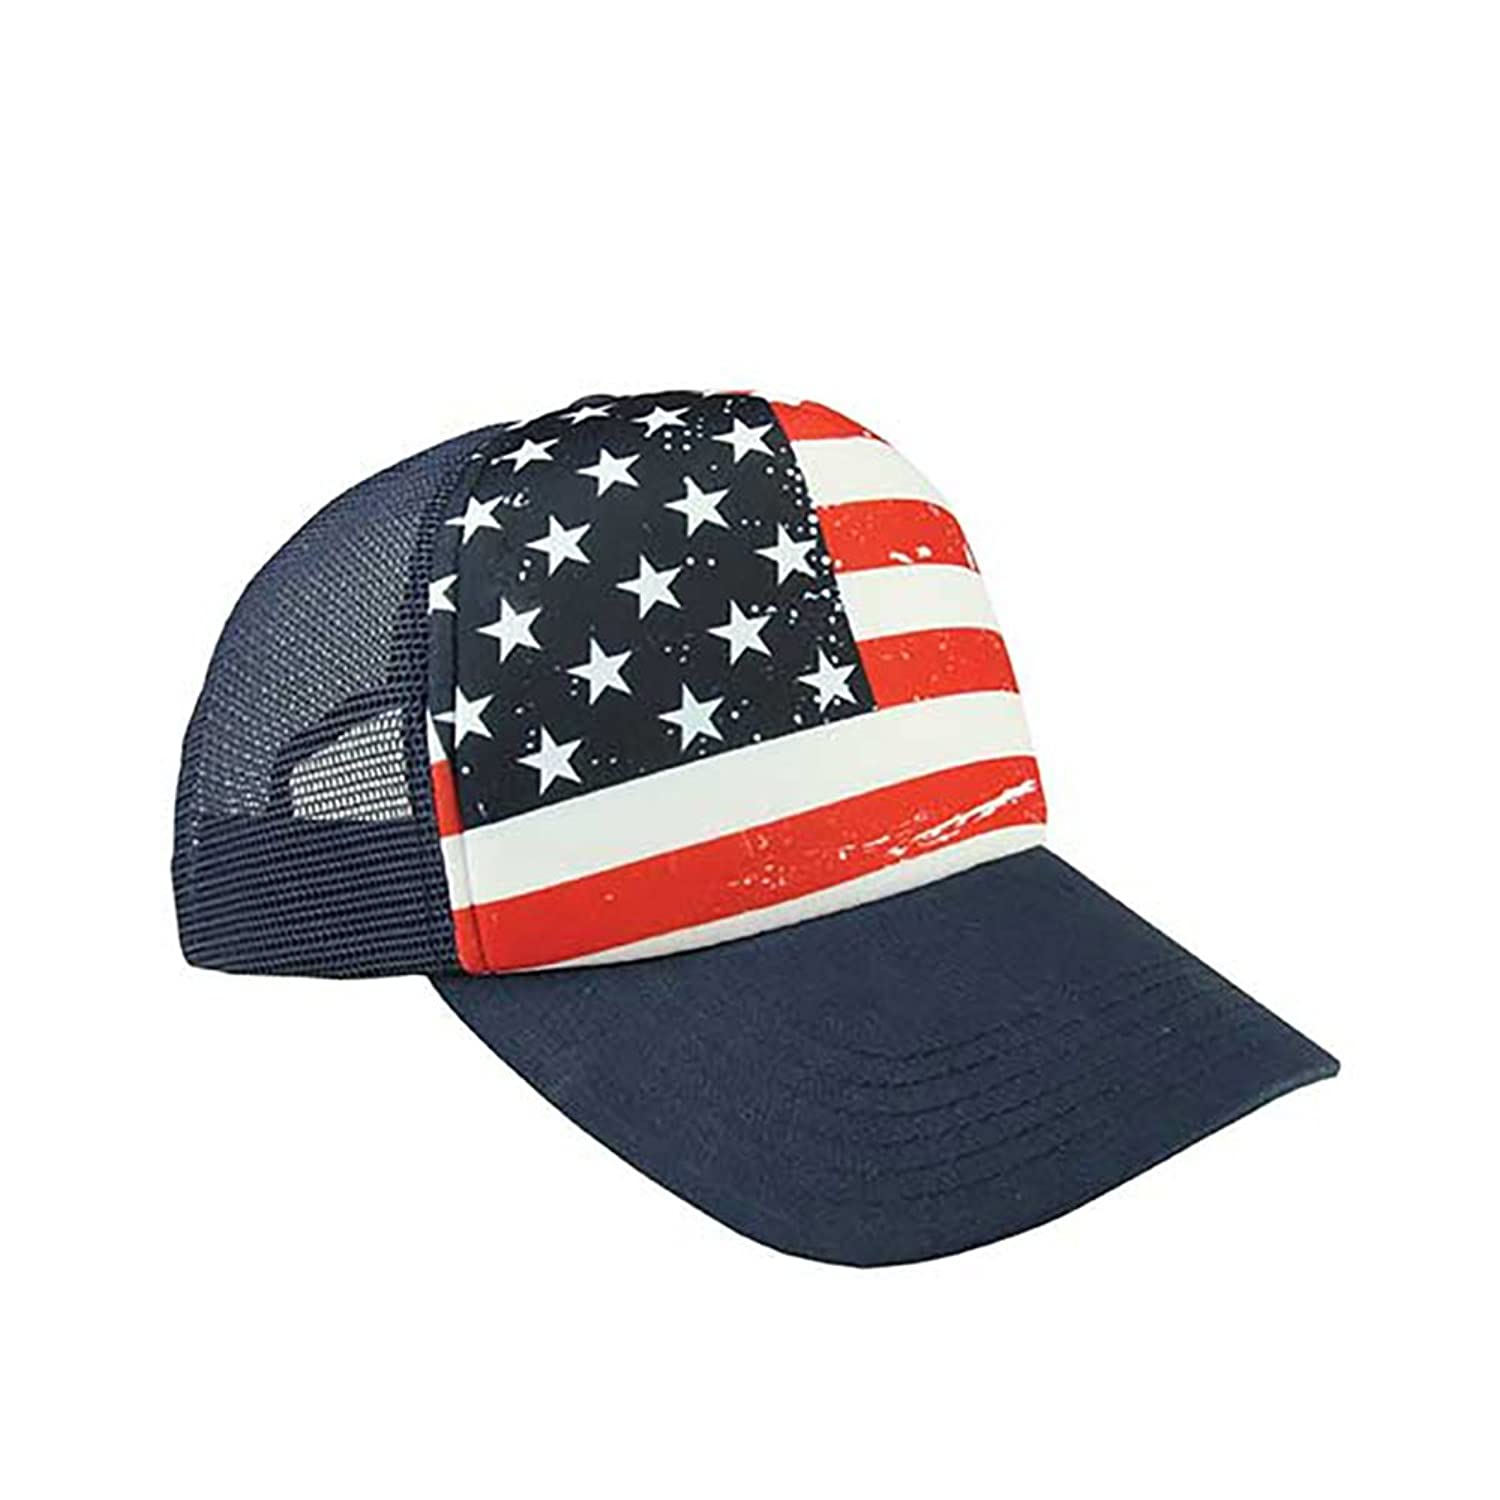 fd692897a0cb Five Panels. Polyester Front With Mesh Back. Plastic Adjustable Snap  Closure. One size fits most. USA Flag Hat American Flag Hat US Stars and  Stripes Hat